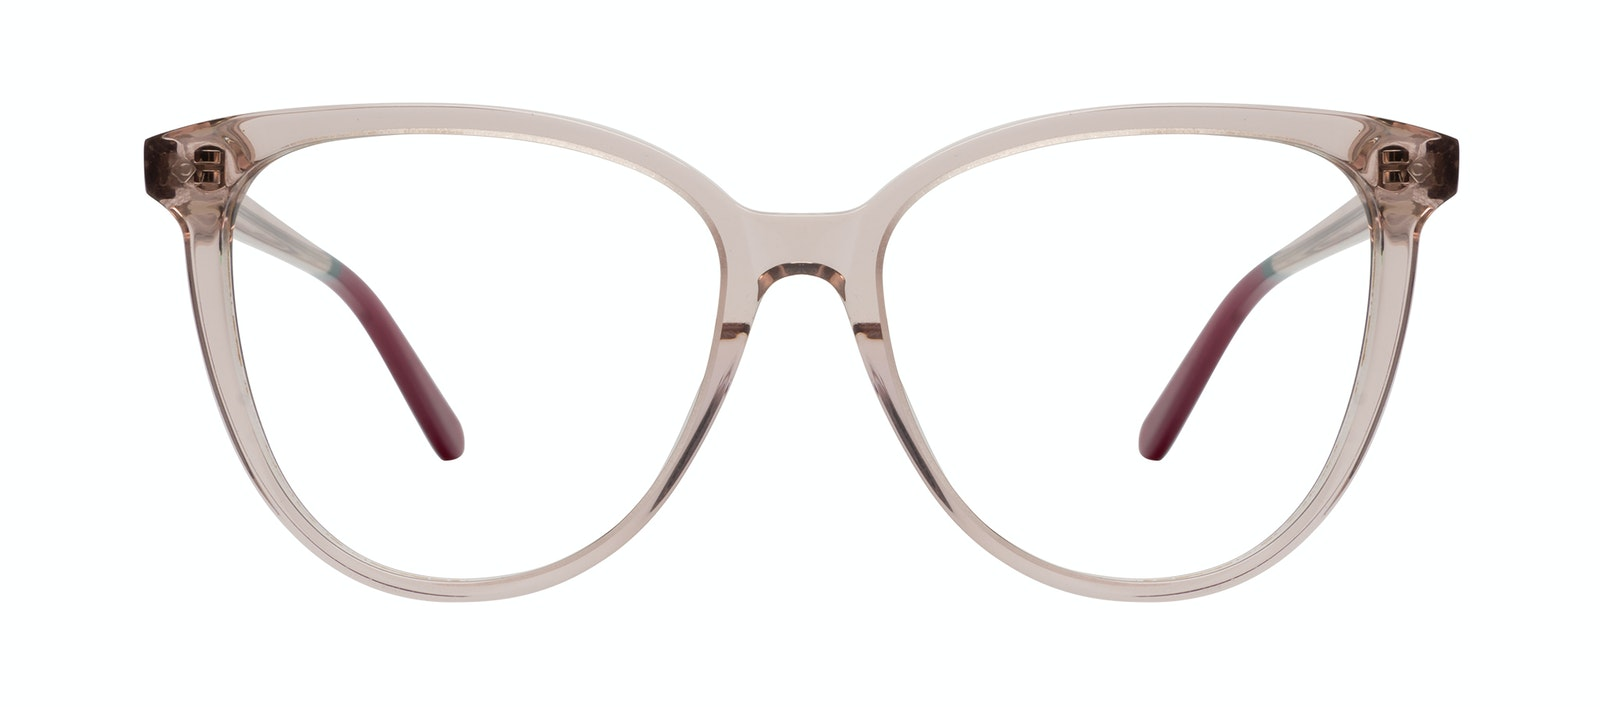 Affordable Fashion Glasses Cat Eye Eyeglasses Women Jane Rose Front